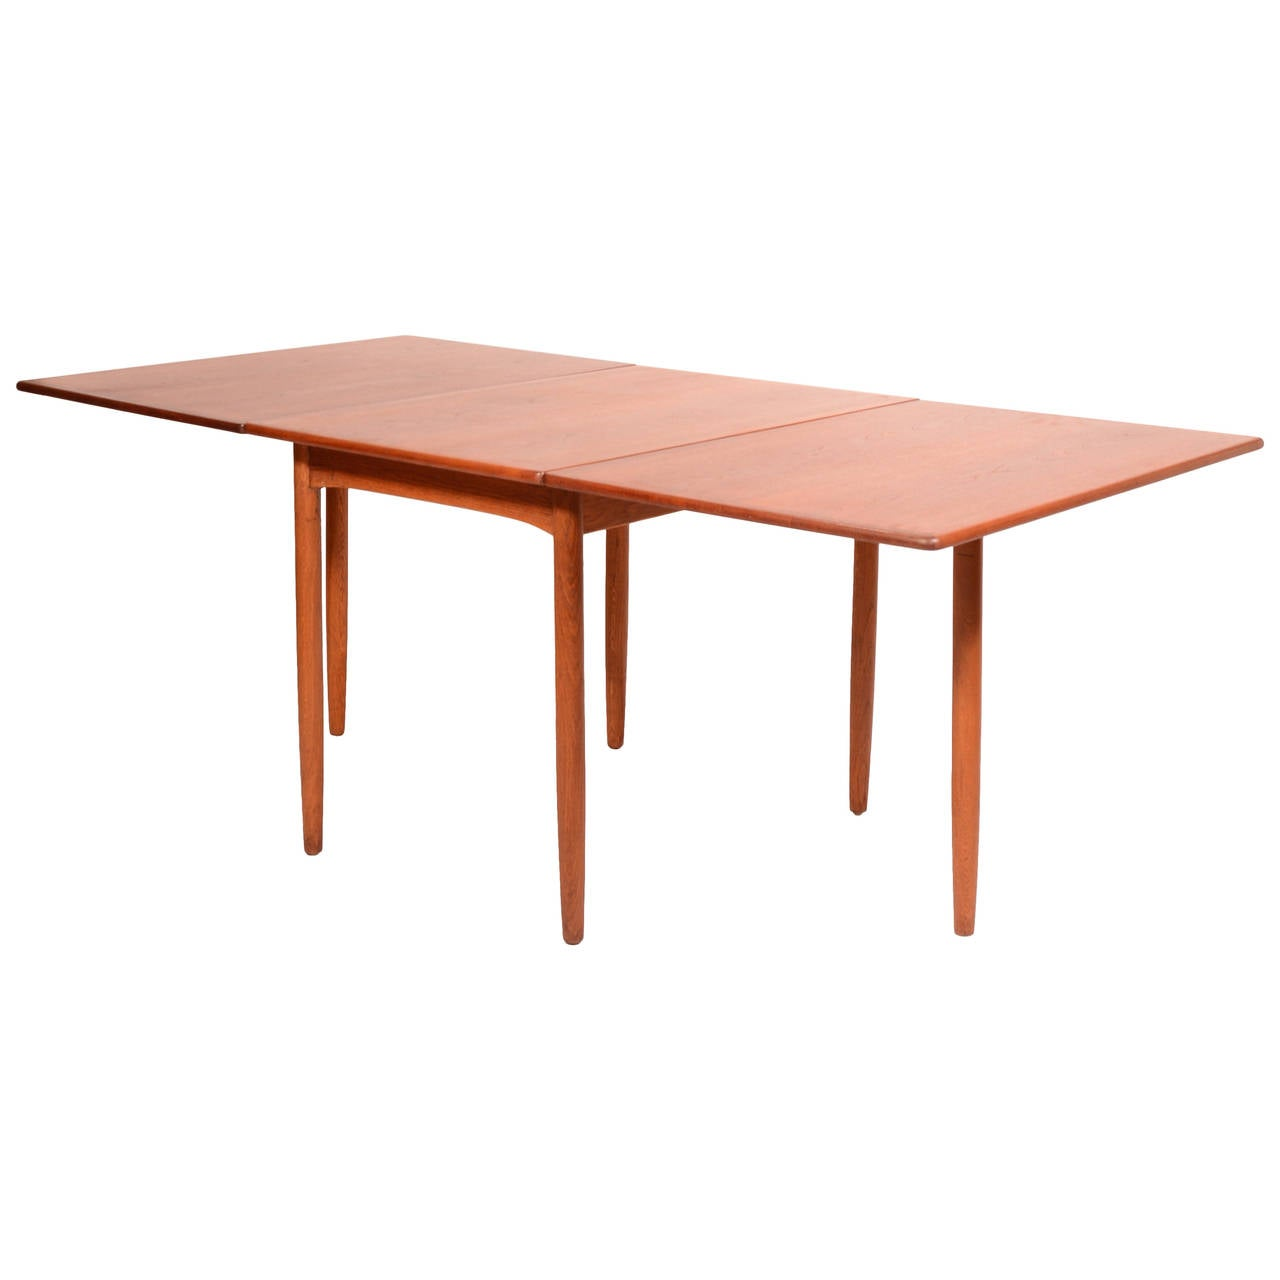 Mid century danish modern drop leaf dining table by hans c for Drop leaf dining table